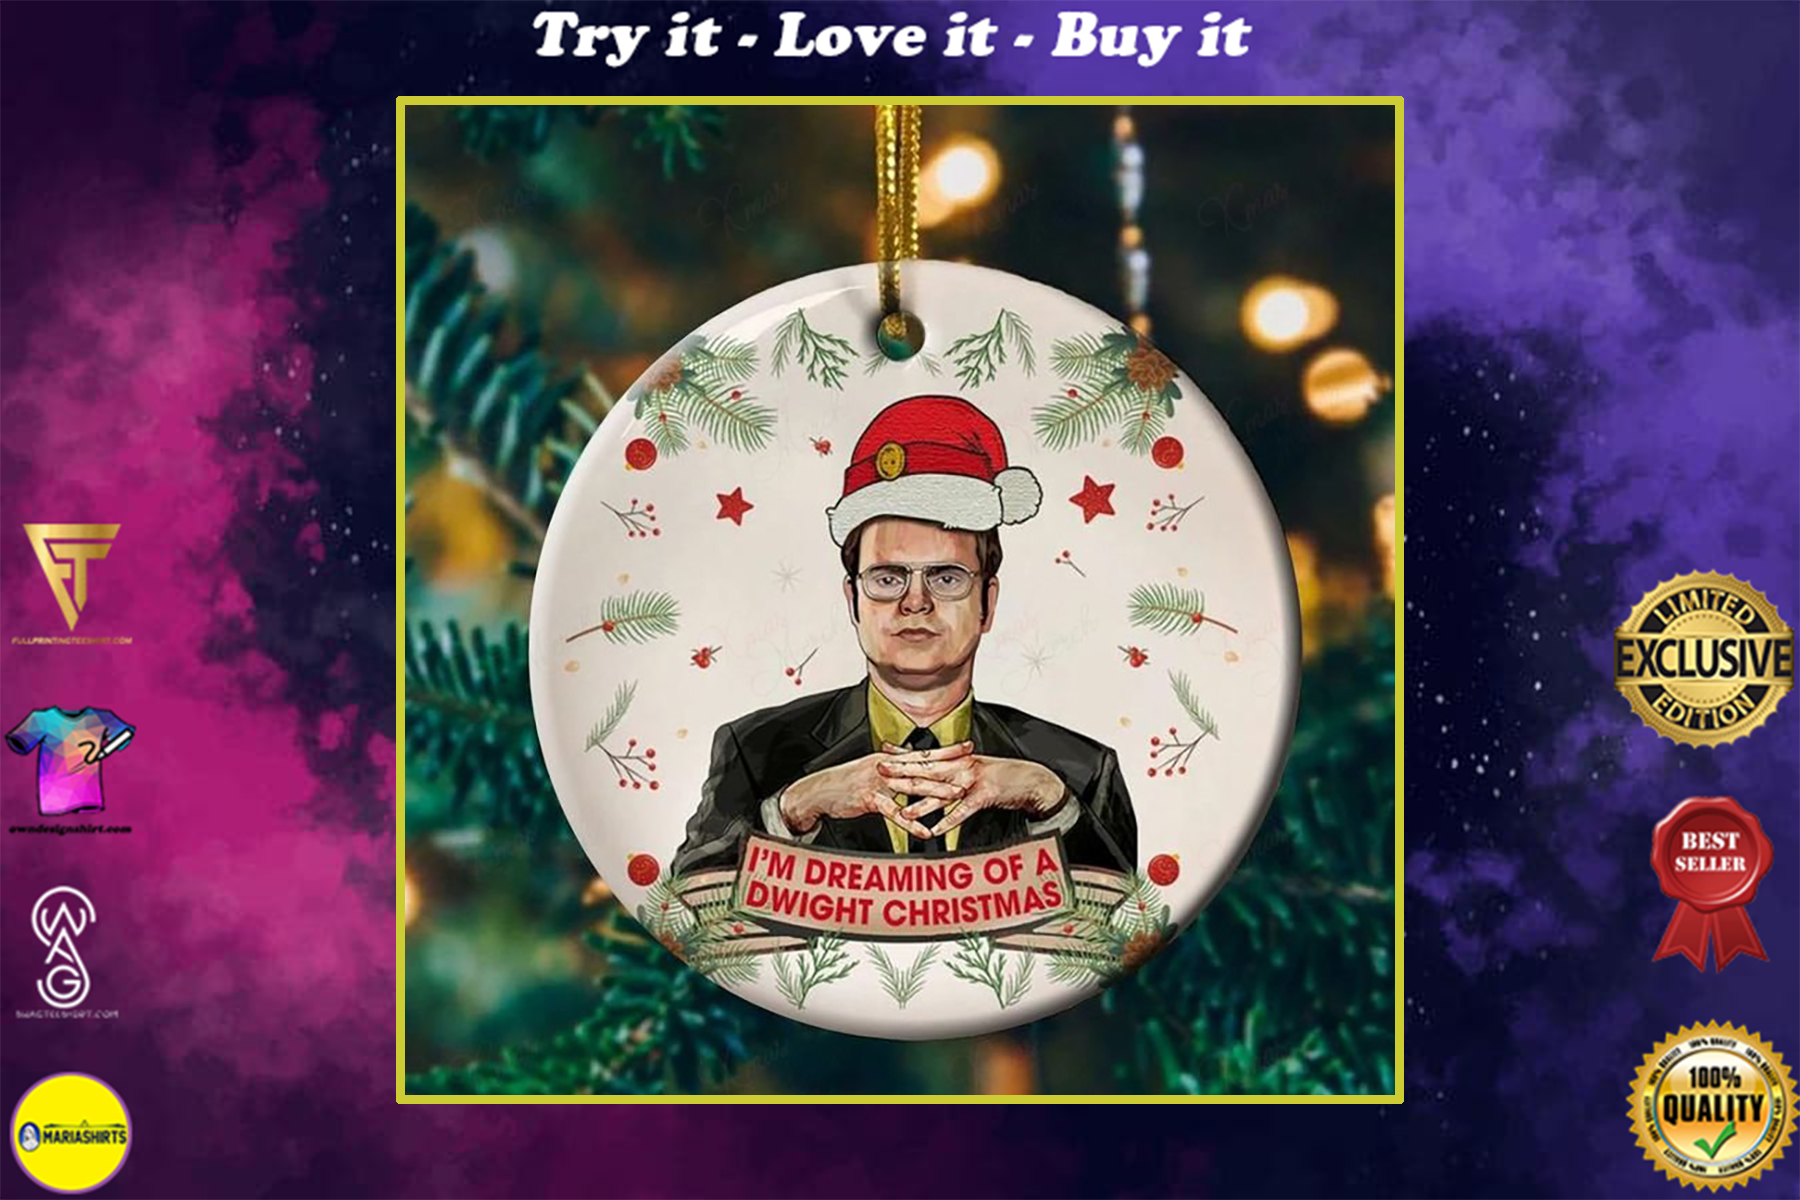 the office dwight schrute im dreaming of a dwight christmas ornament